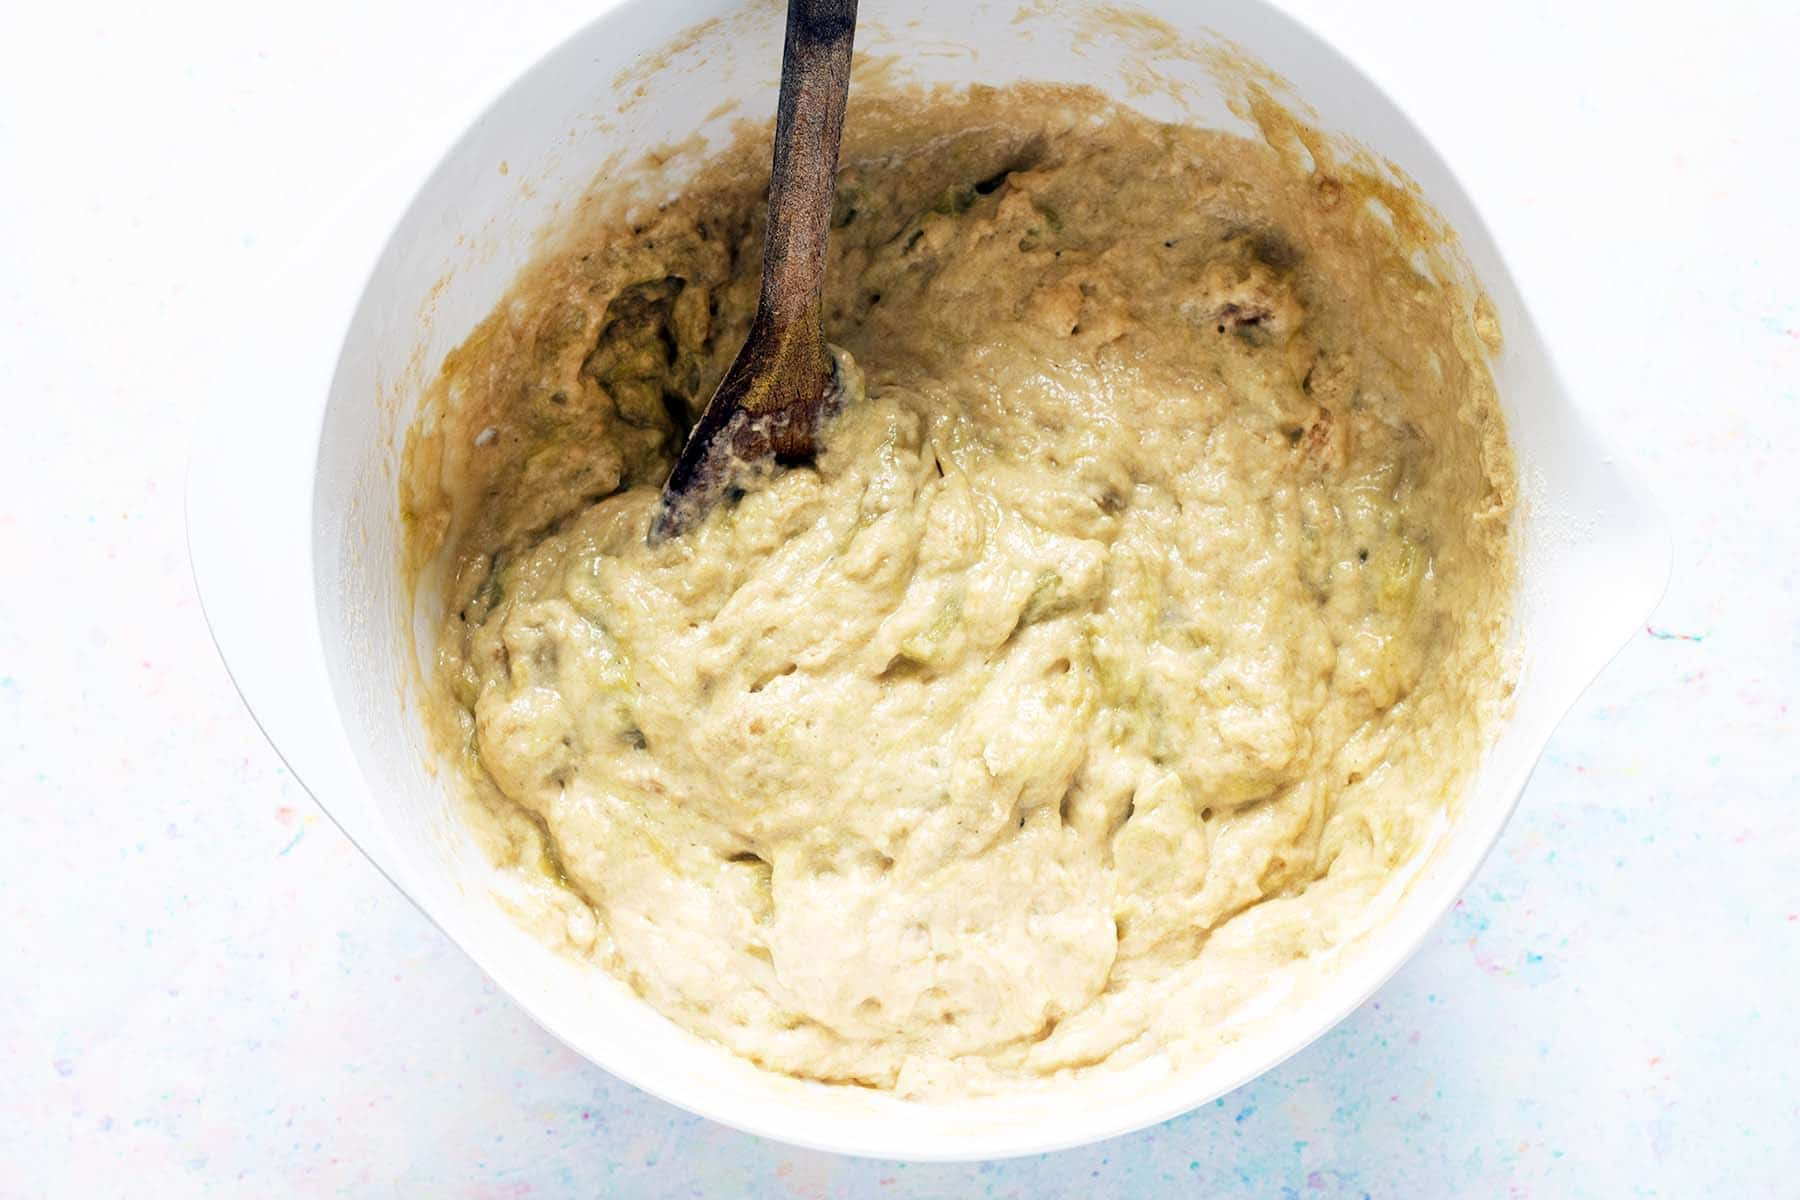 muffin batter in bowl